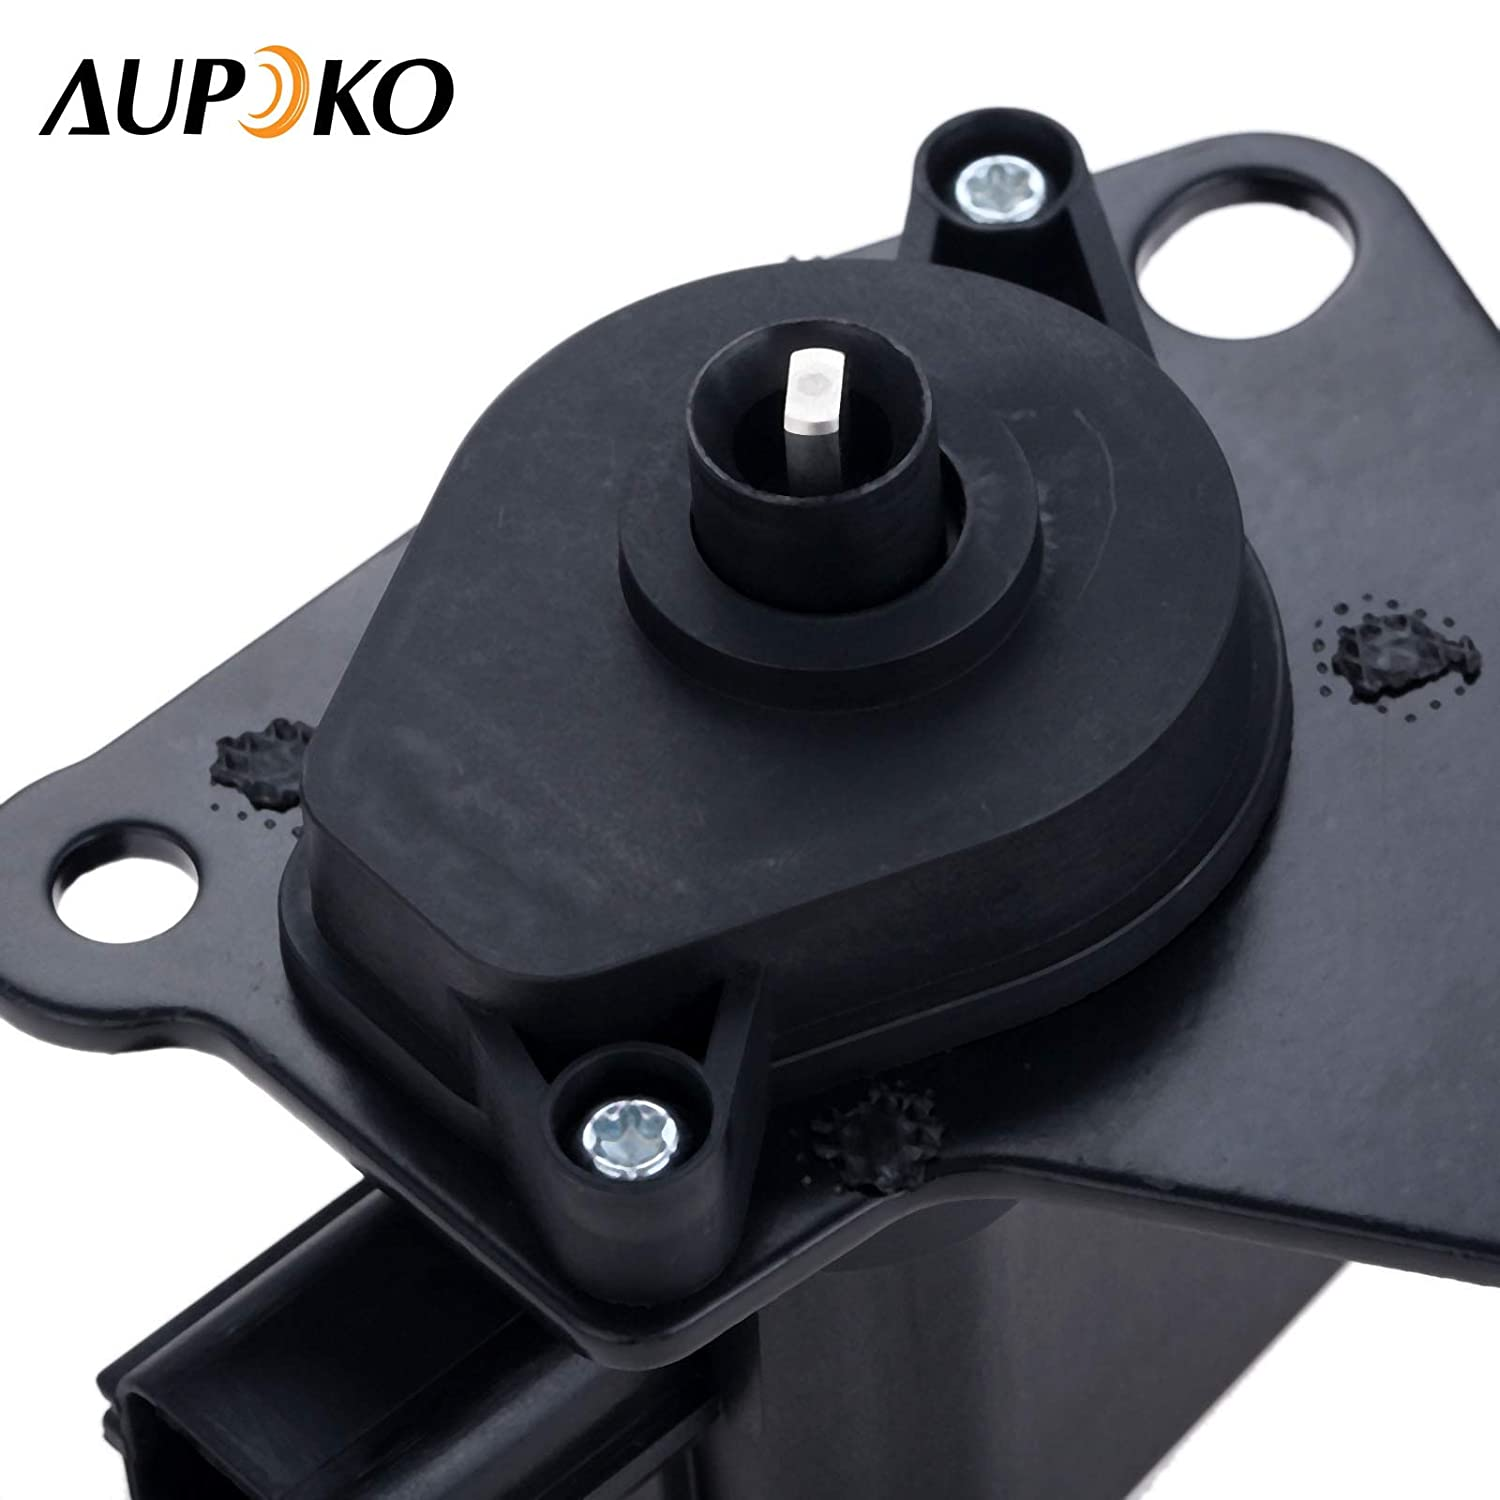 8V1010 MRC1002 Fits for Dodge Caliber Jeep Chrysler Sebring Actuator Flow Control Valve Replace# 4884549AD IMRC4 Aupoko 911-902 DSFDG006 Intake Manifold Runner Control Valve